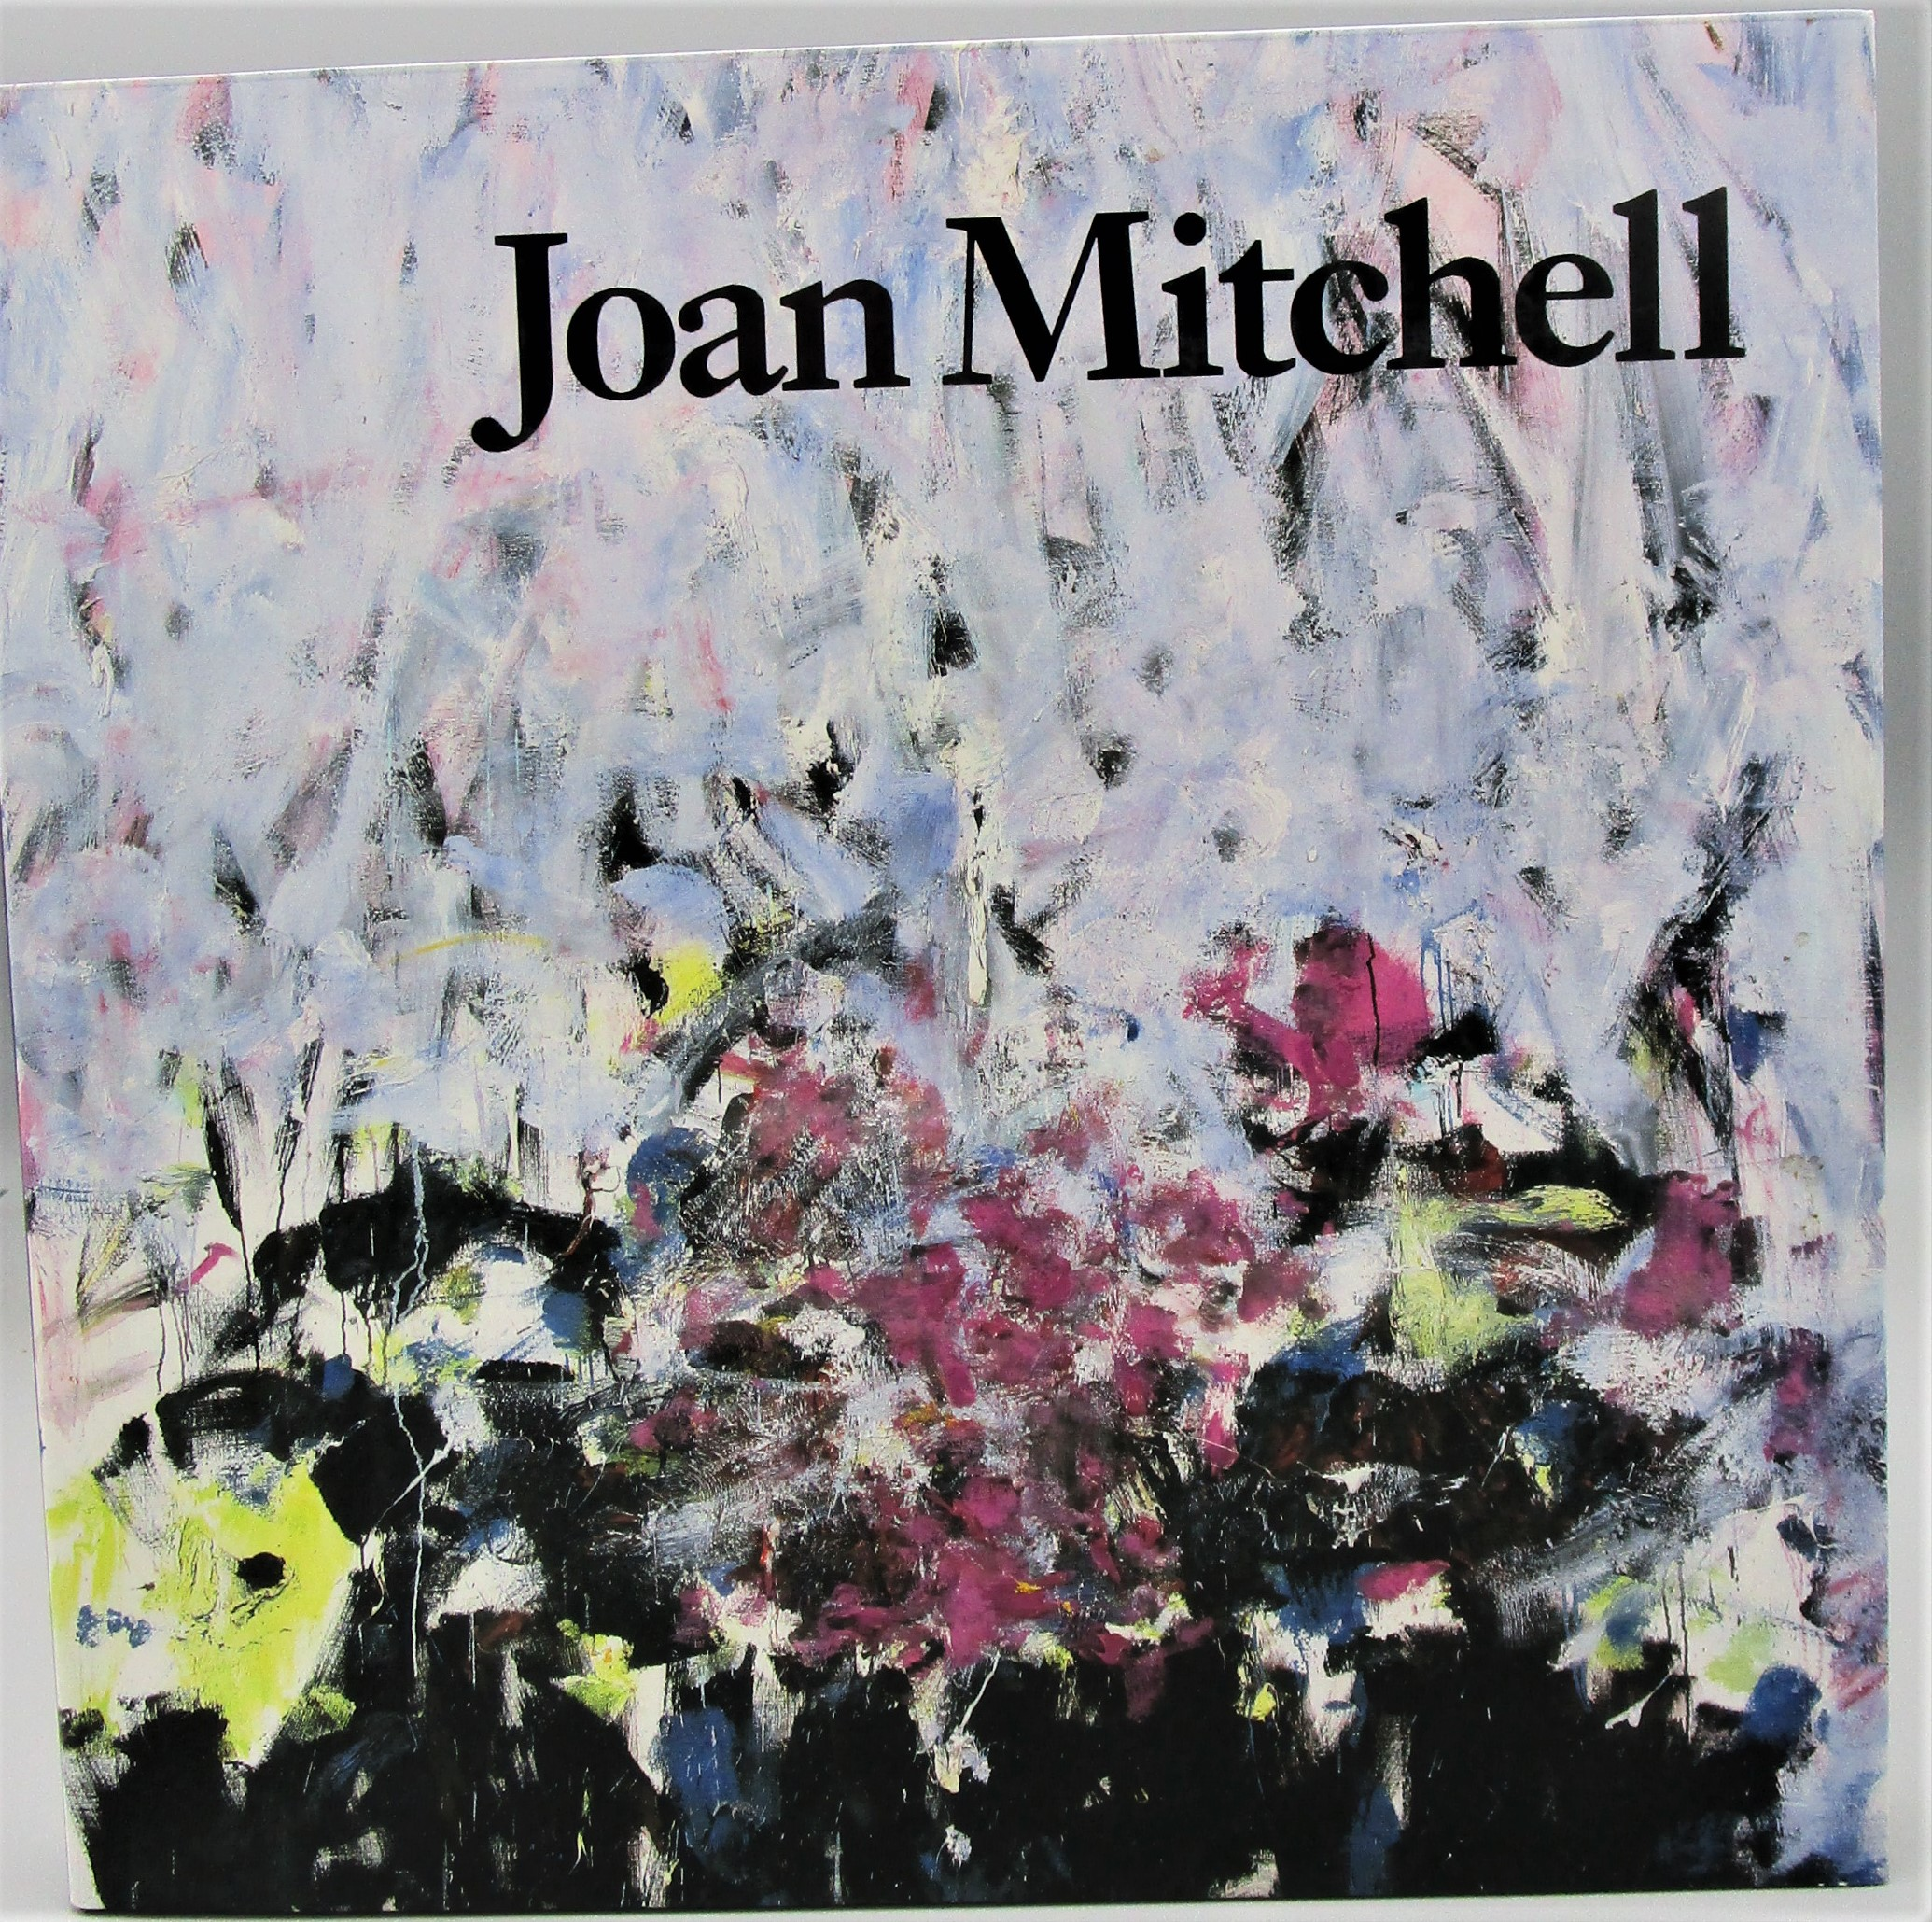 JOAN MITCHELL, by Judith E. Bernstock - 1988